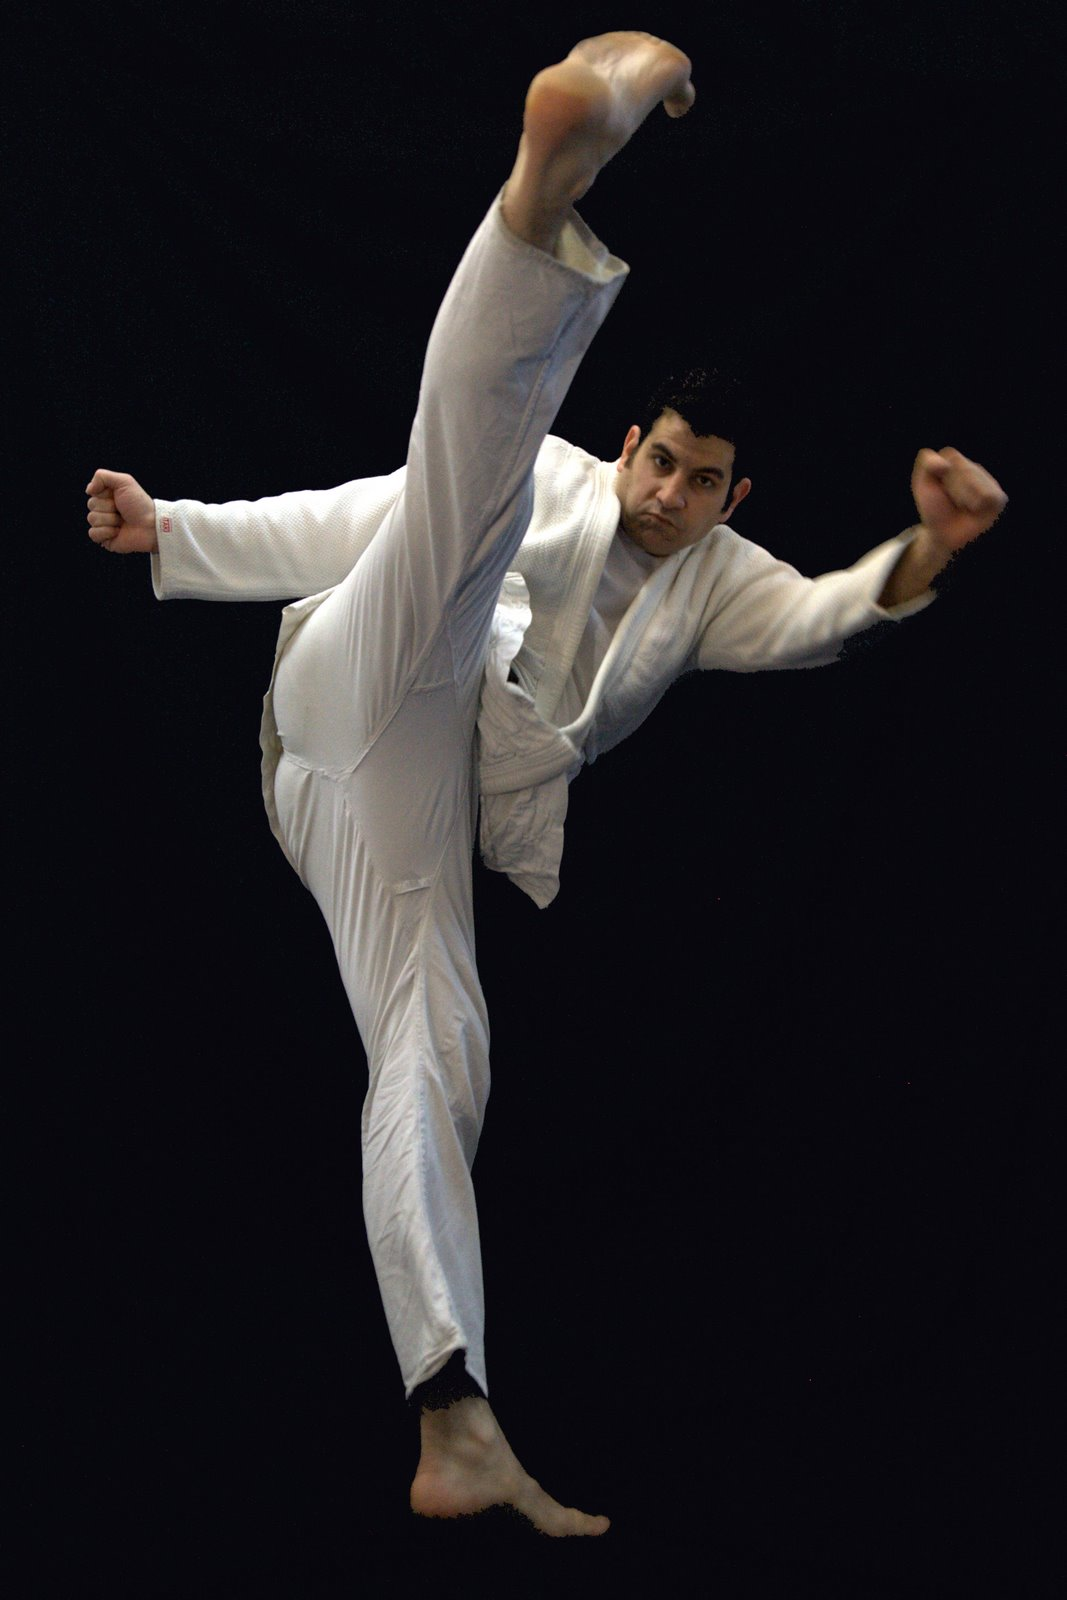 Sickle kick (Beit Magal) in Cluj-Napoca, Romania, in 2007.